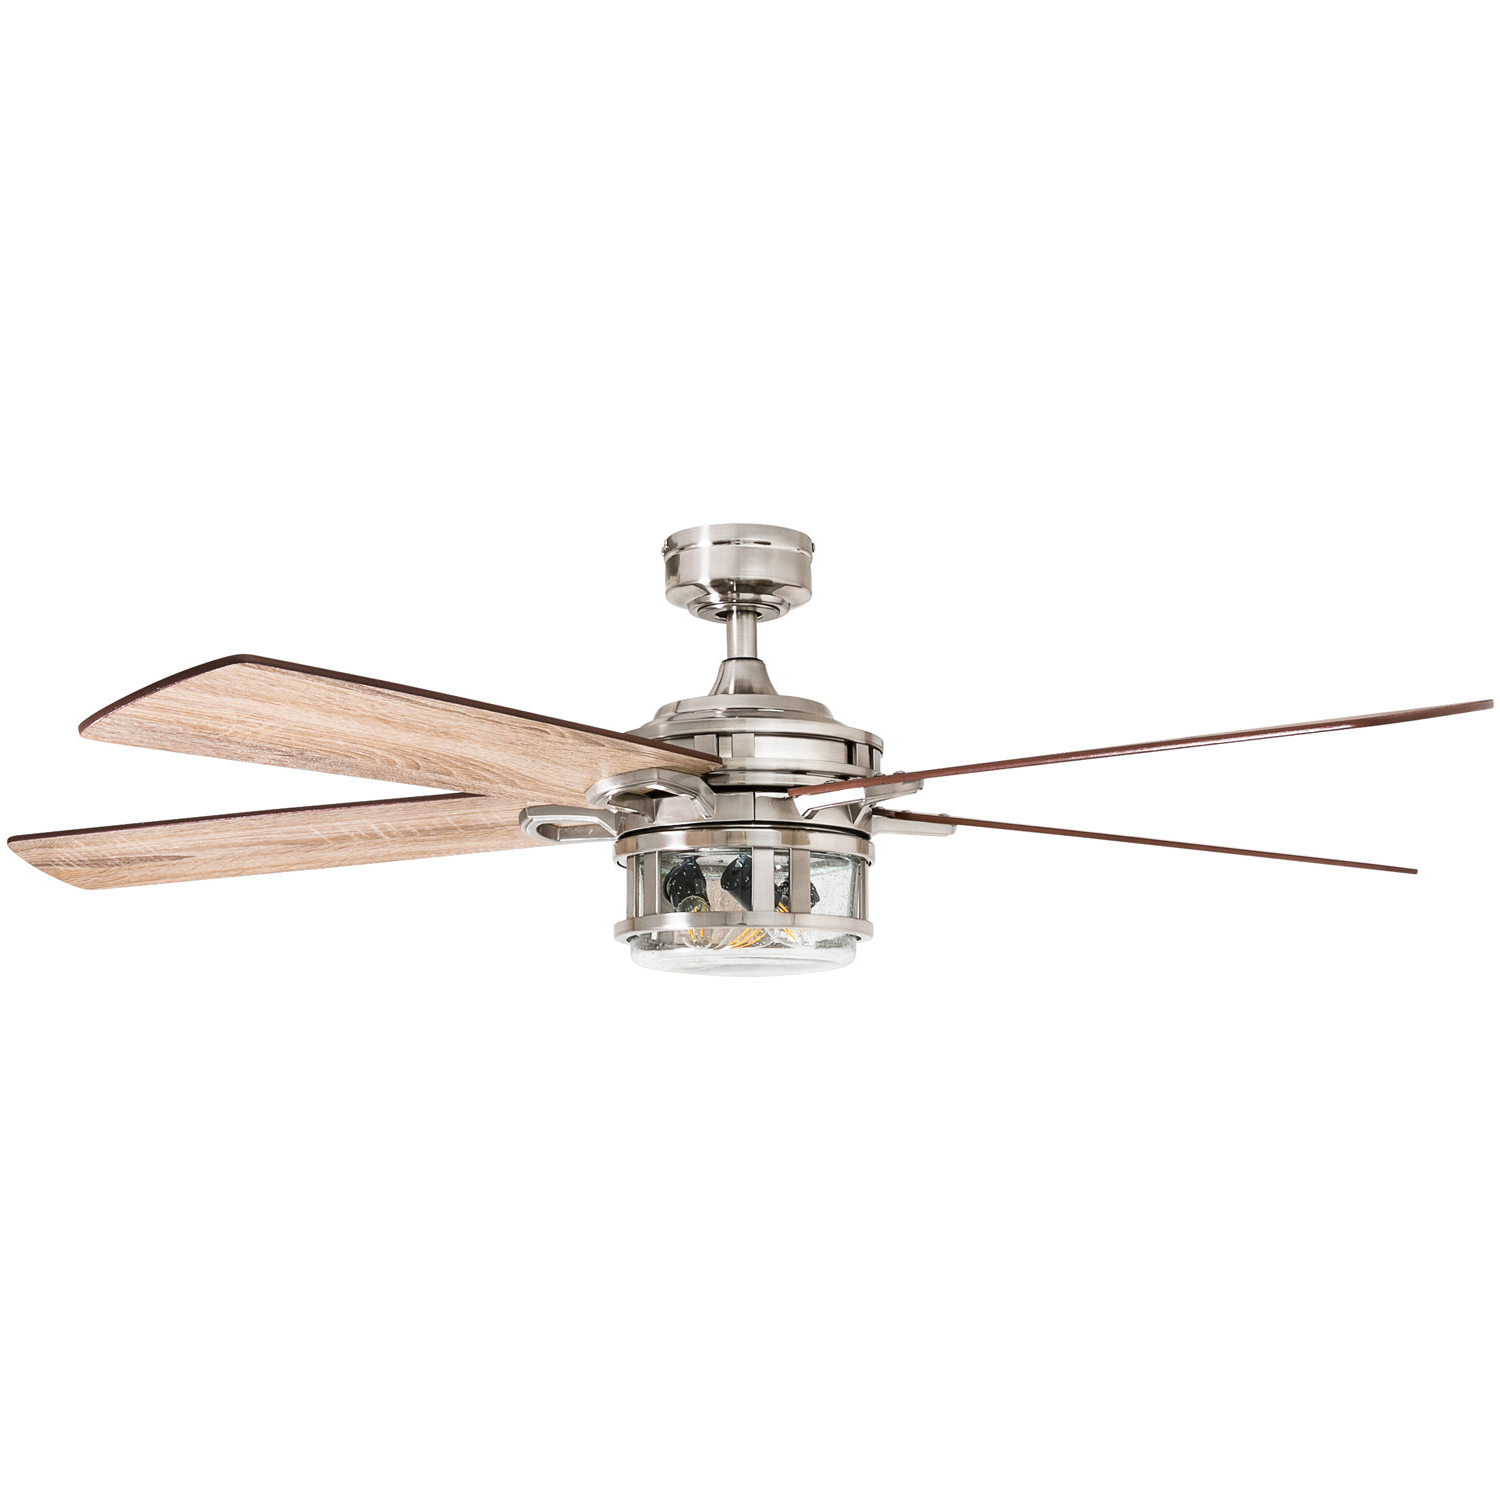 "Fashionable 52"" Rafe 5 Blades Led Ceiling Fan Light Kit Included Inside Kyla 5 Blade Ceiling Fans (View 18 of 20)"